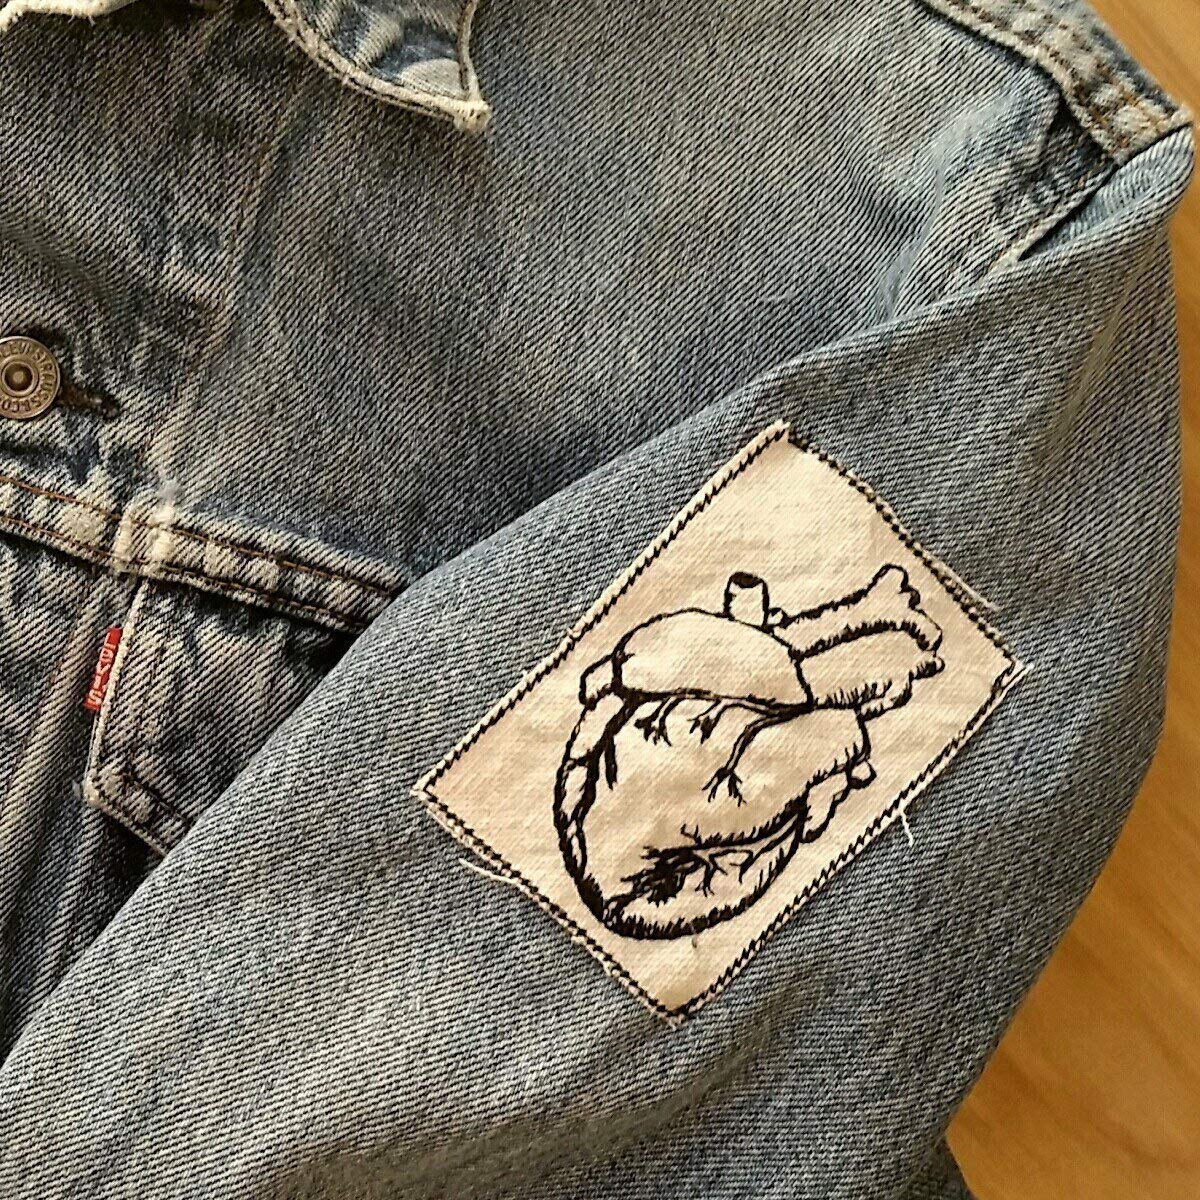 Embroidered Vintage Graphic Vintage Tattoo Style Heart Upcycled Canvas Iron On Jacket Patch